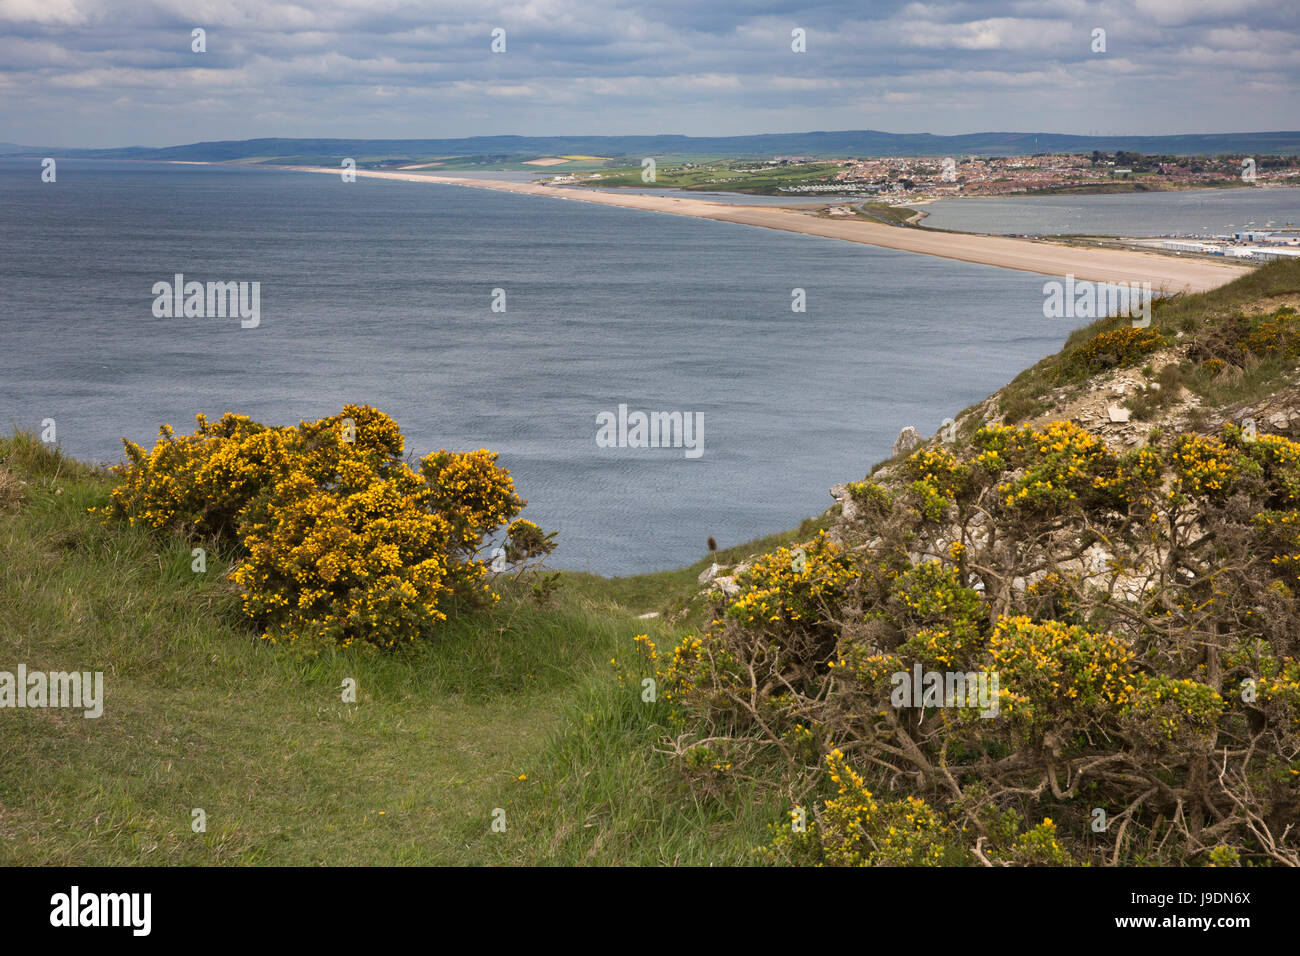 UK England, Dorset, Portland, Clay Ope, Tout Quarry Sculpture Park, view down onto Chesil Beach - Stock Image